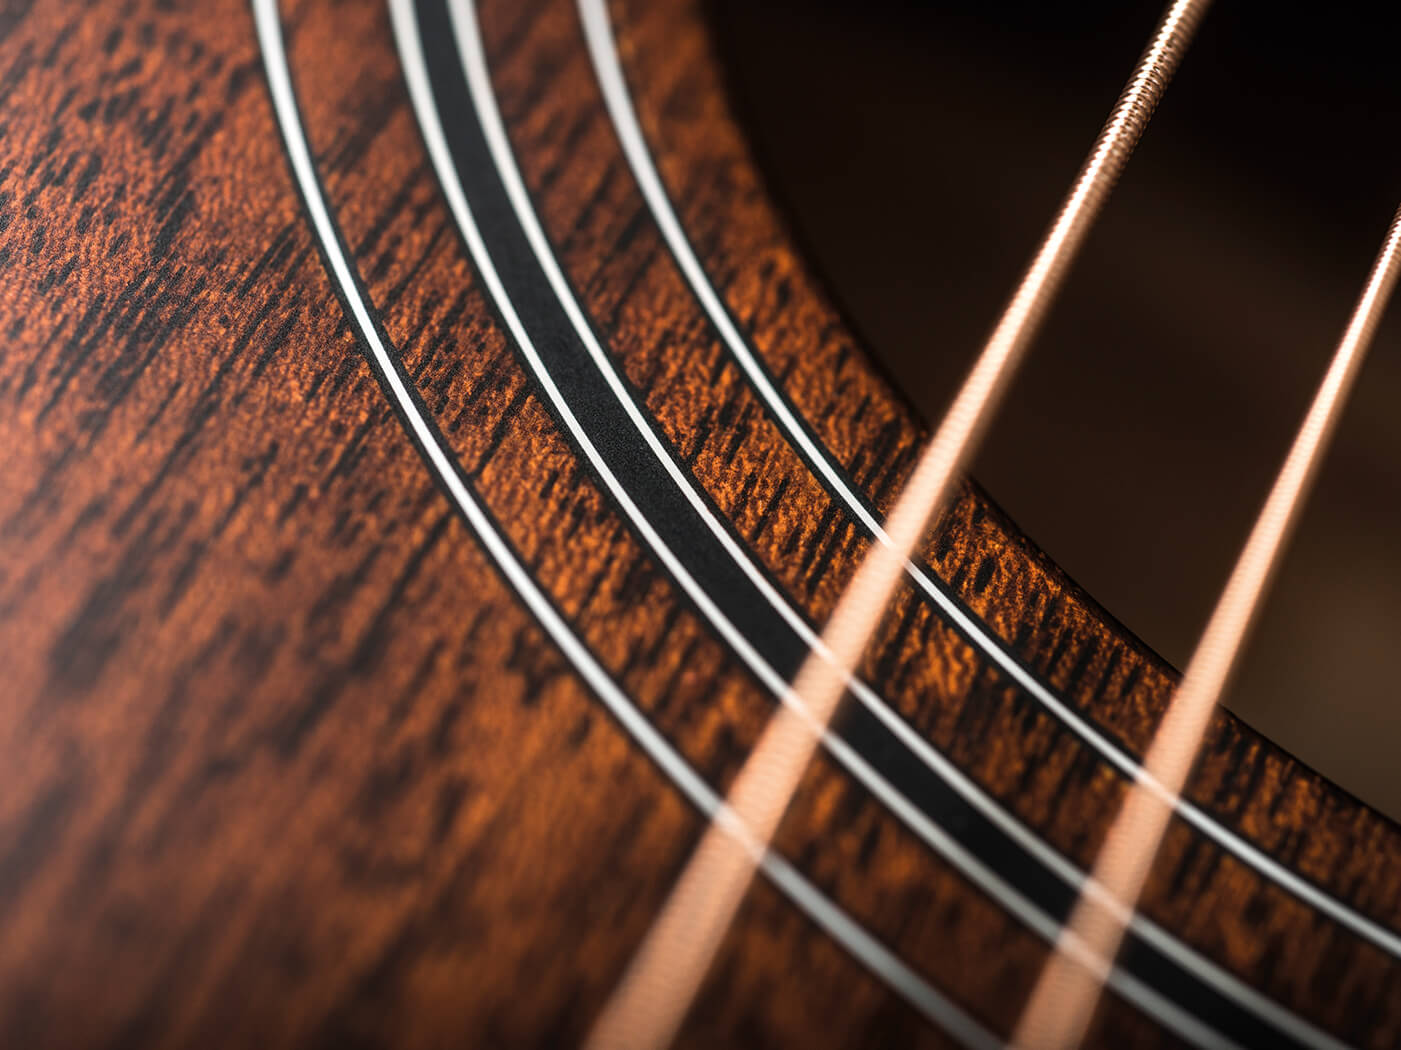 Taylor 322ce soundhole and rosette